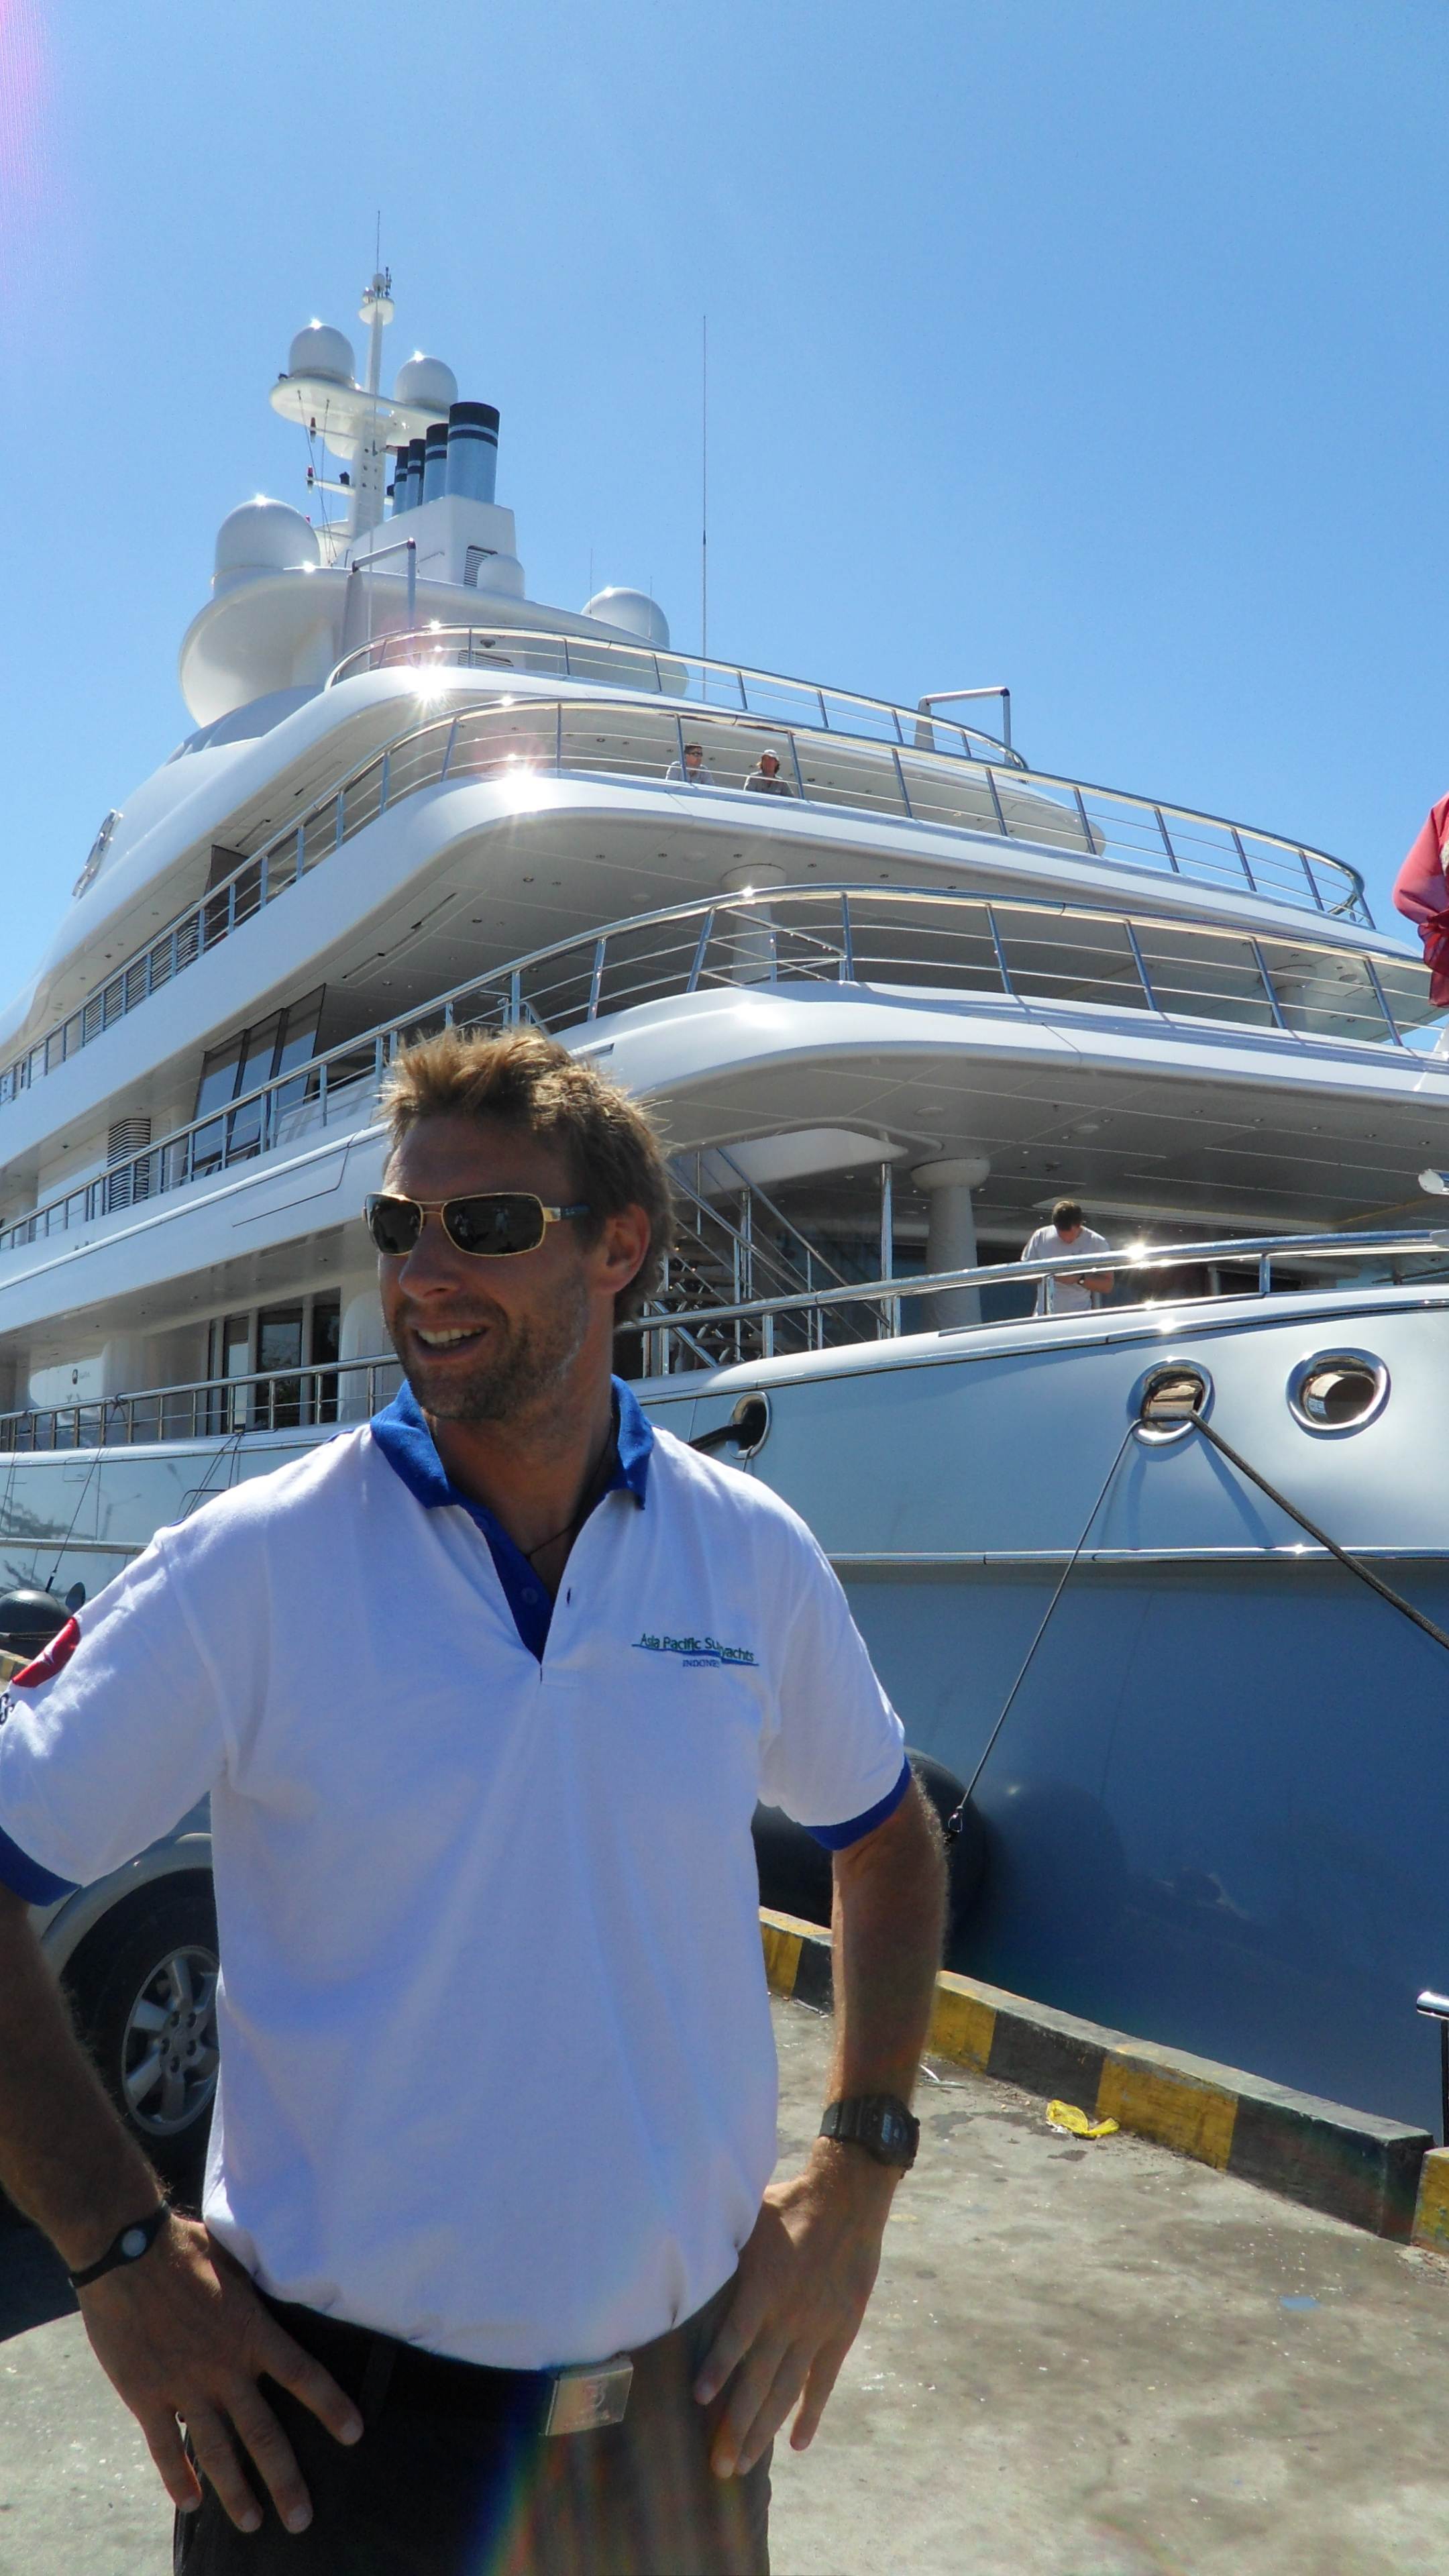 Private Yacht Charter Bali >> 'Discover Indonesia' Richard Lofthounse on 'Mayan Queen' Yacht at Bali Dock — Yacht Charter ...